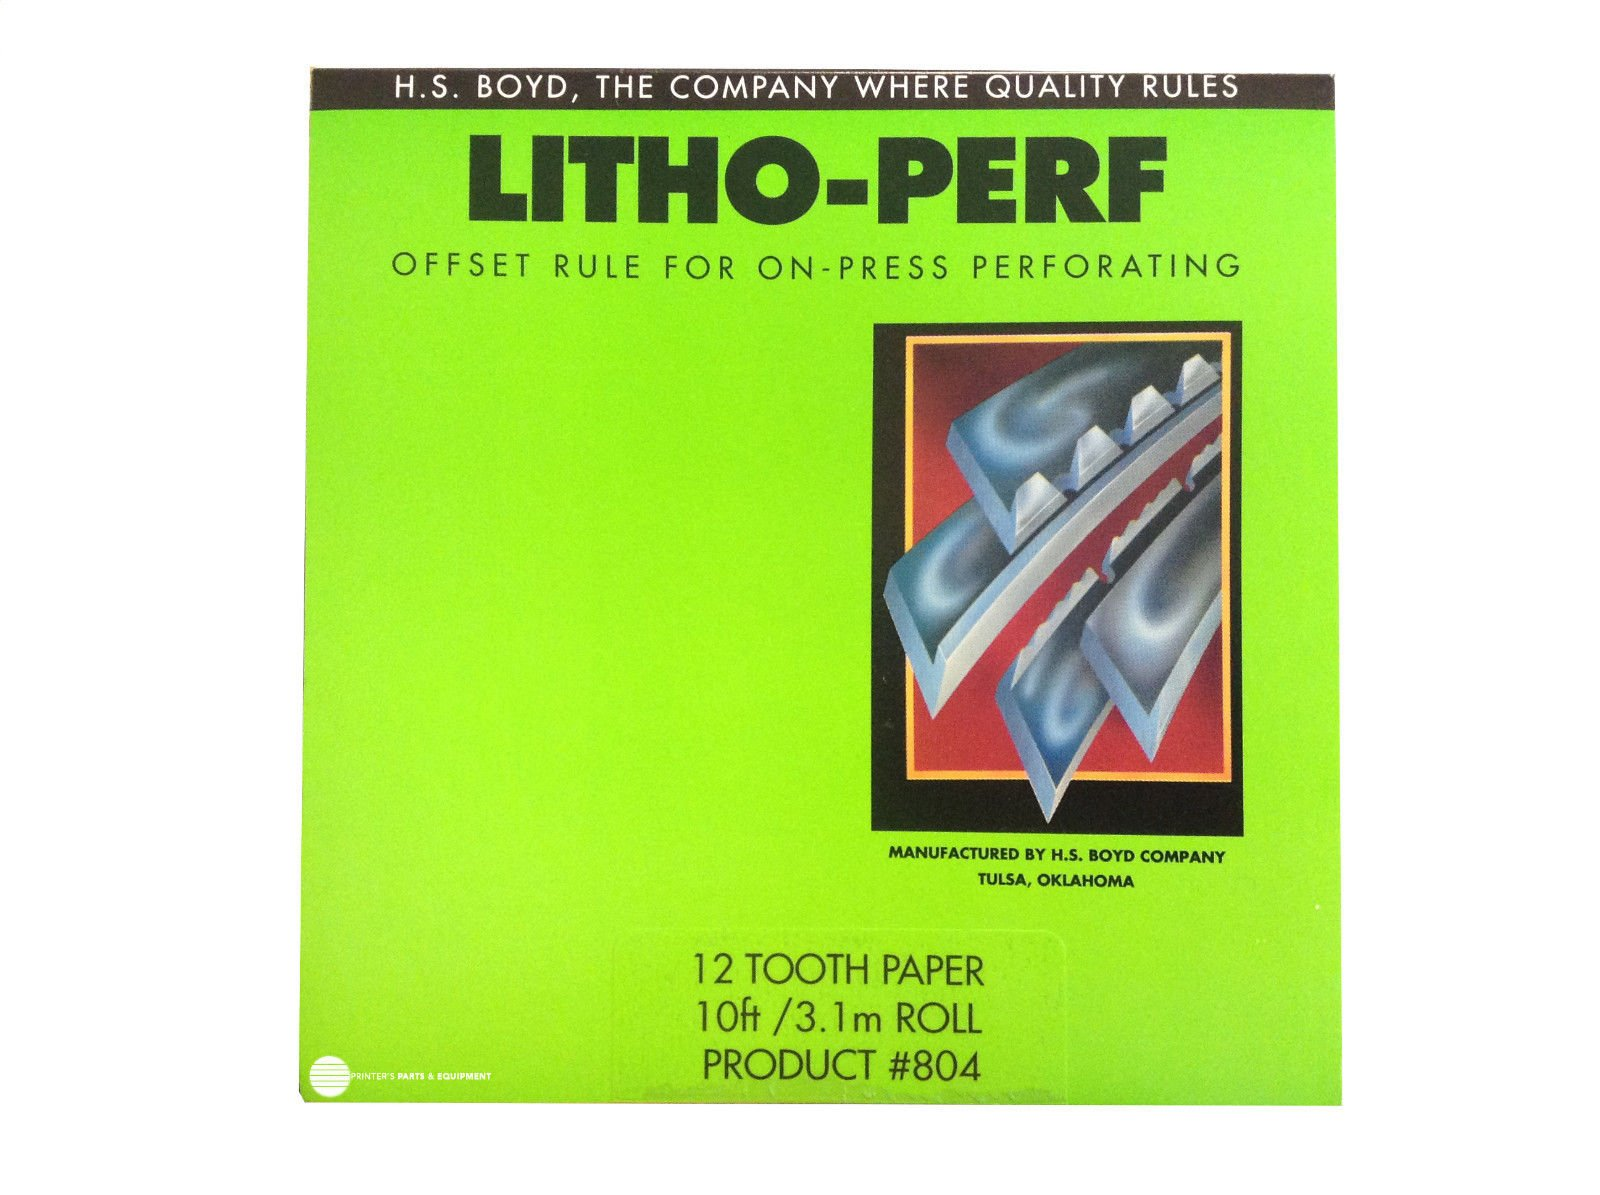 HS BOYD Litho-Perf 12 Tooth 10 feet Paper Product # 804